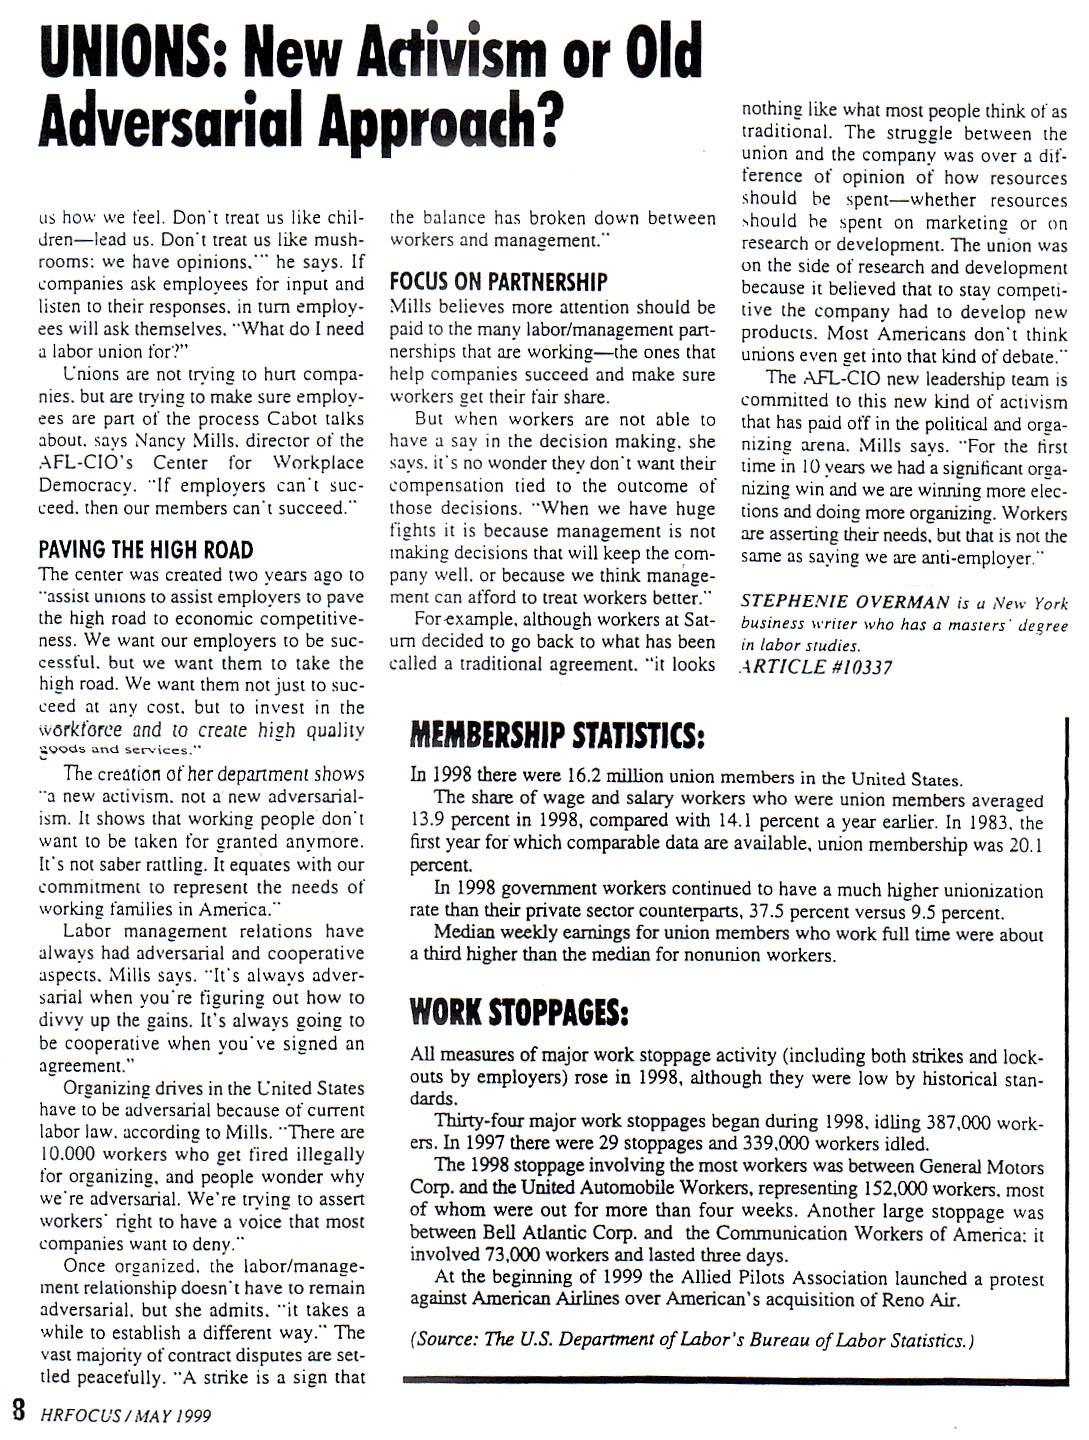 hr focus-may 1999-unions new activism or old adversarial approach  page 2.jpg